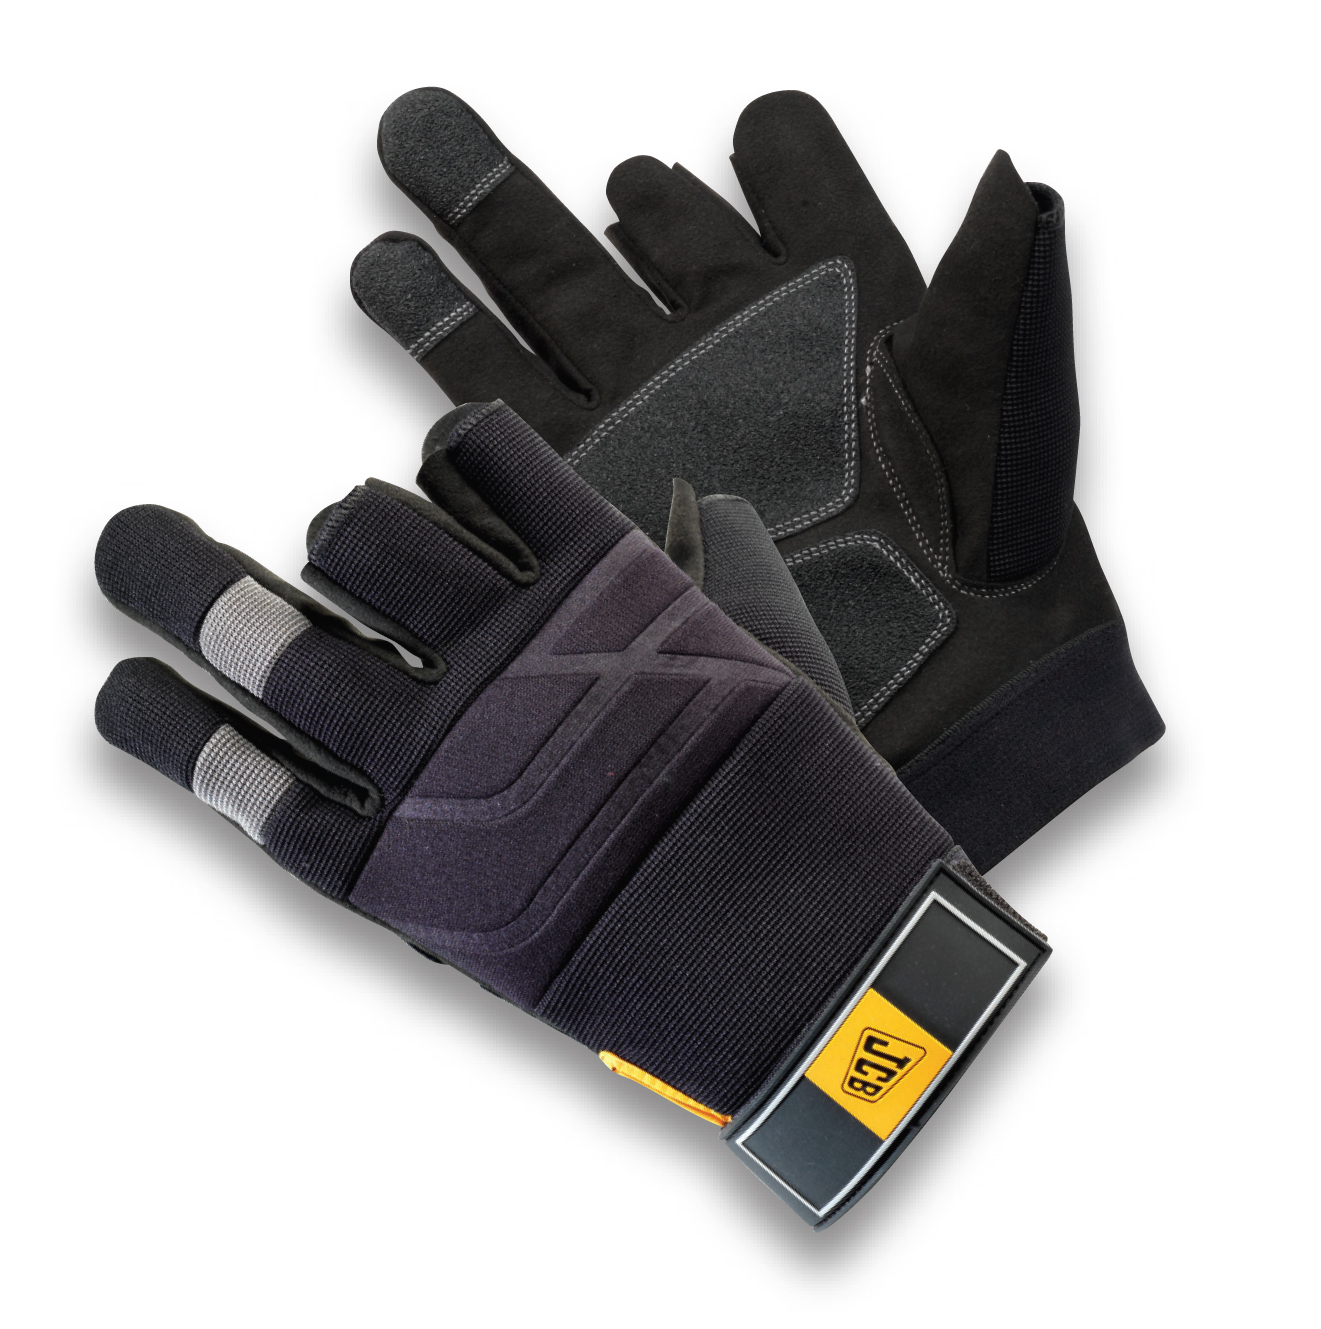 For a high level of dexterity and better range of motion, wear Fingerless Work gloves. We have a large variety of styles, colors, and sizes. We have a large variety of styles, colors, and sizes. They are from name brands like Memphis, PIP, Ergodyne, and Ironclad.